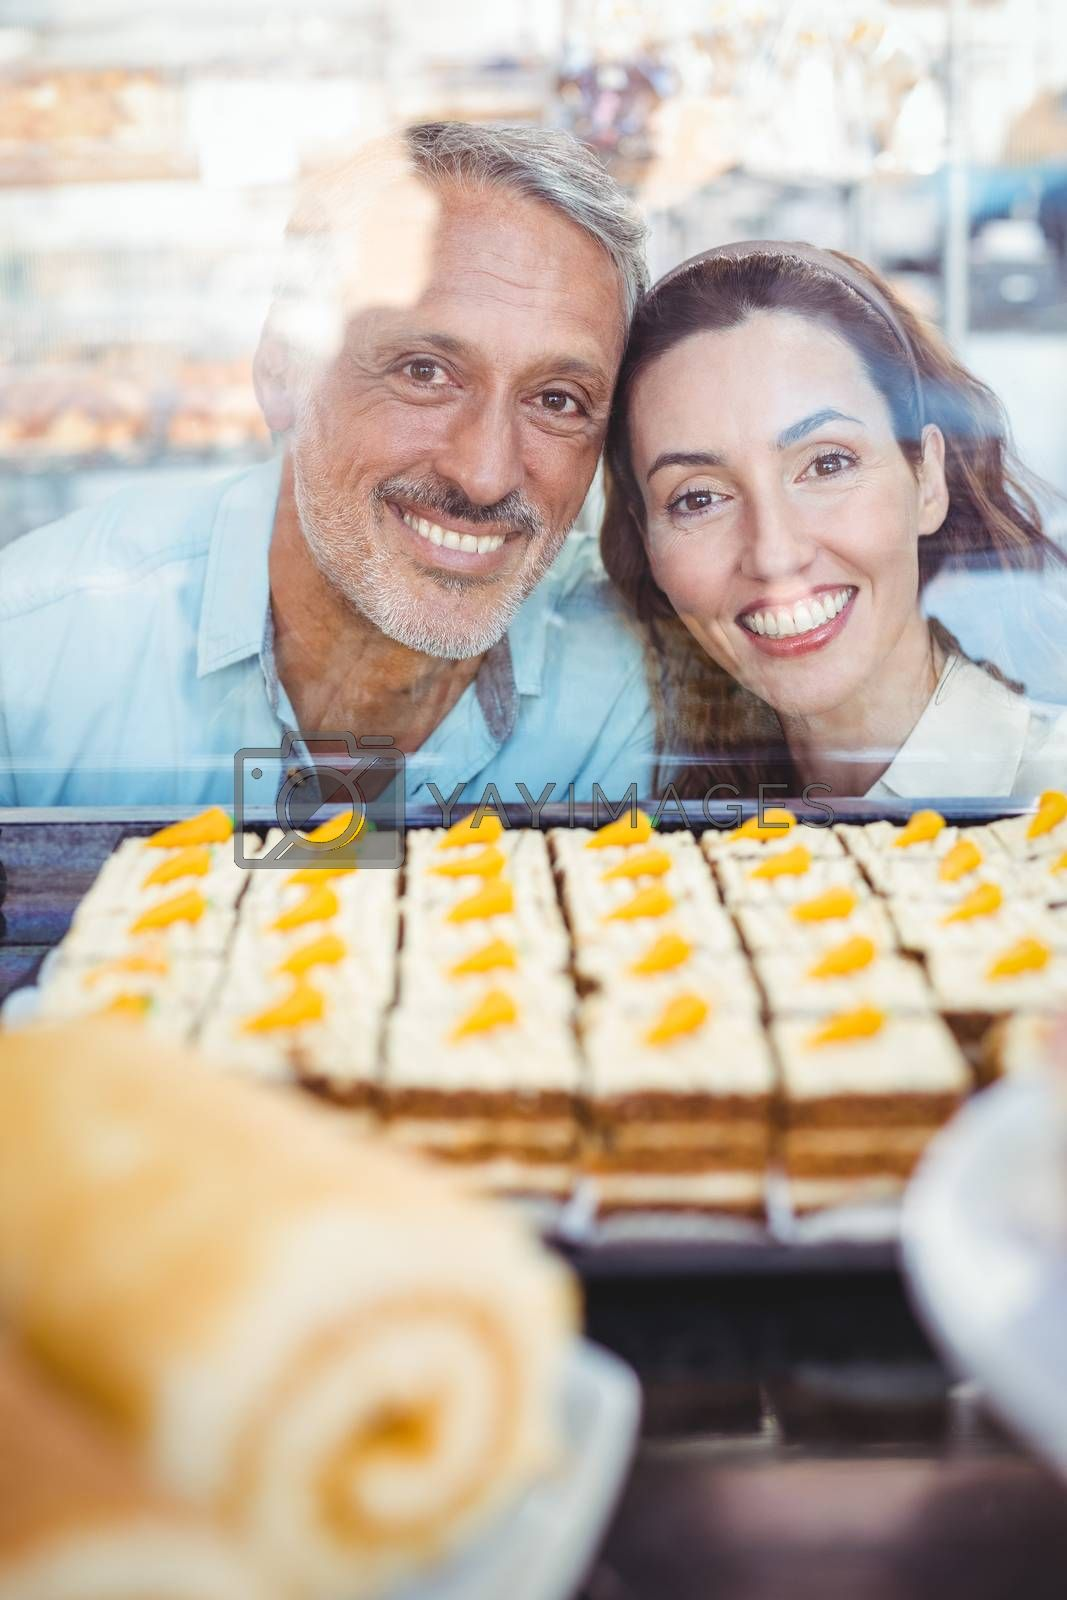 Royalty free image of Happy couple looking at pastries through the glass by Wavebreakmedia